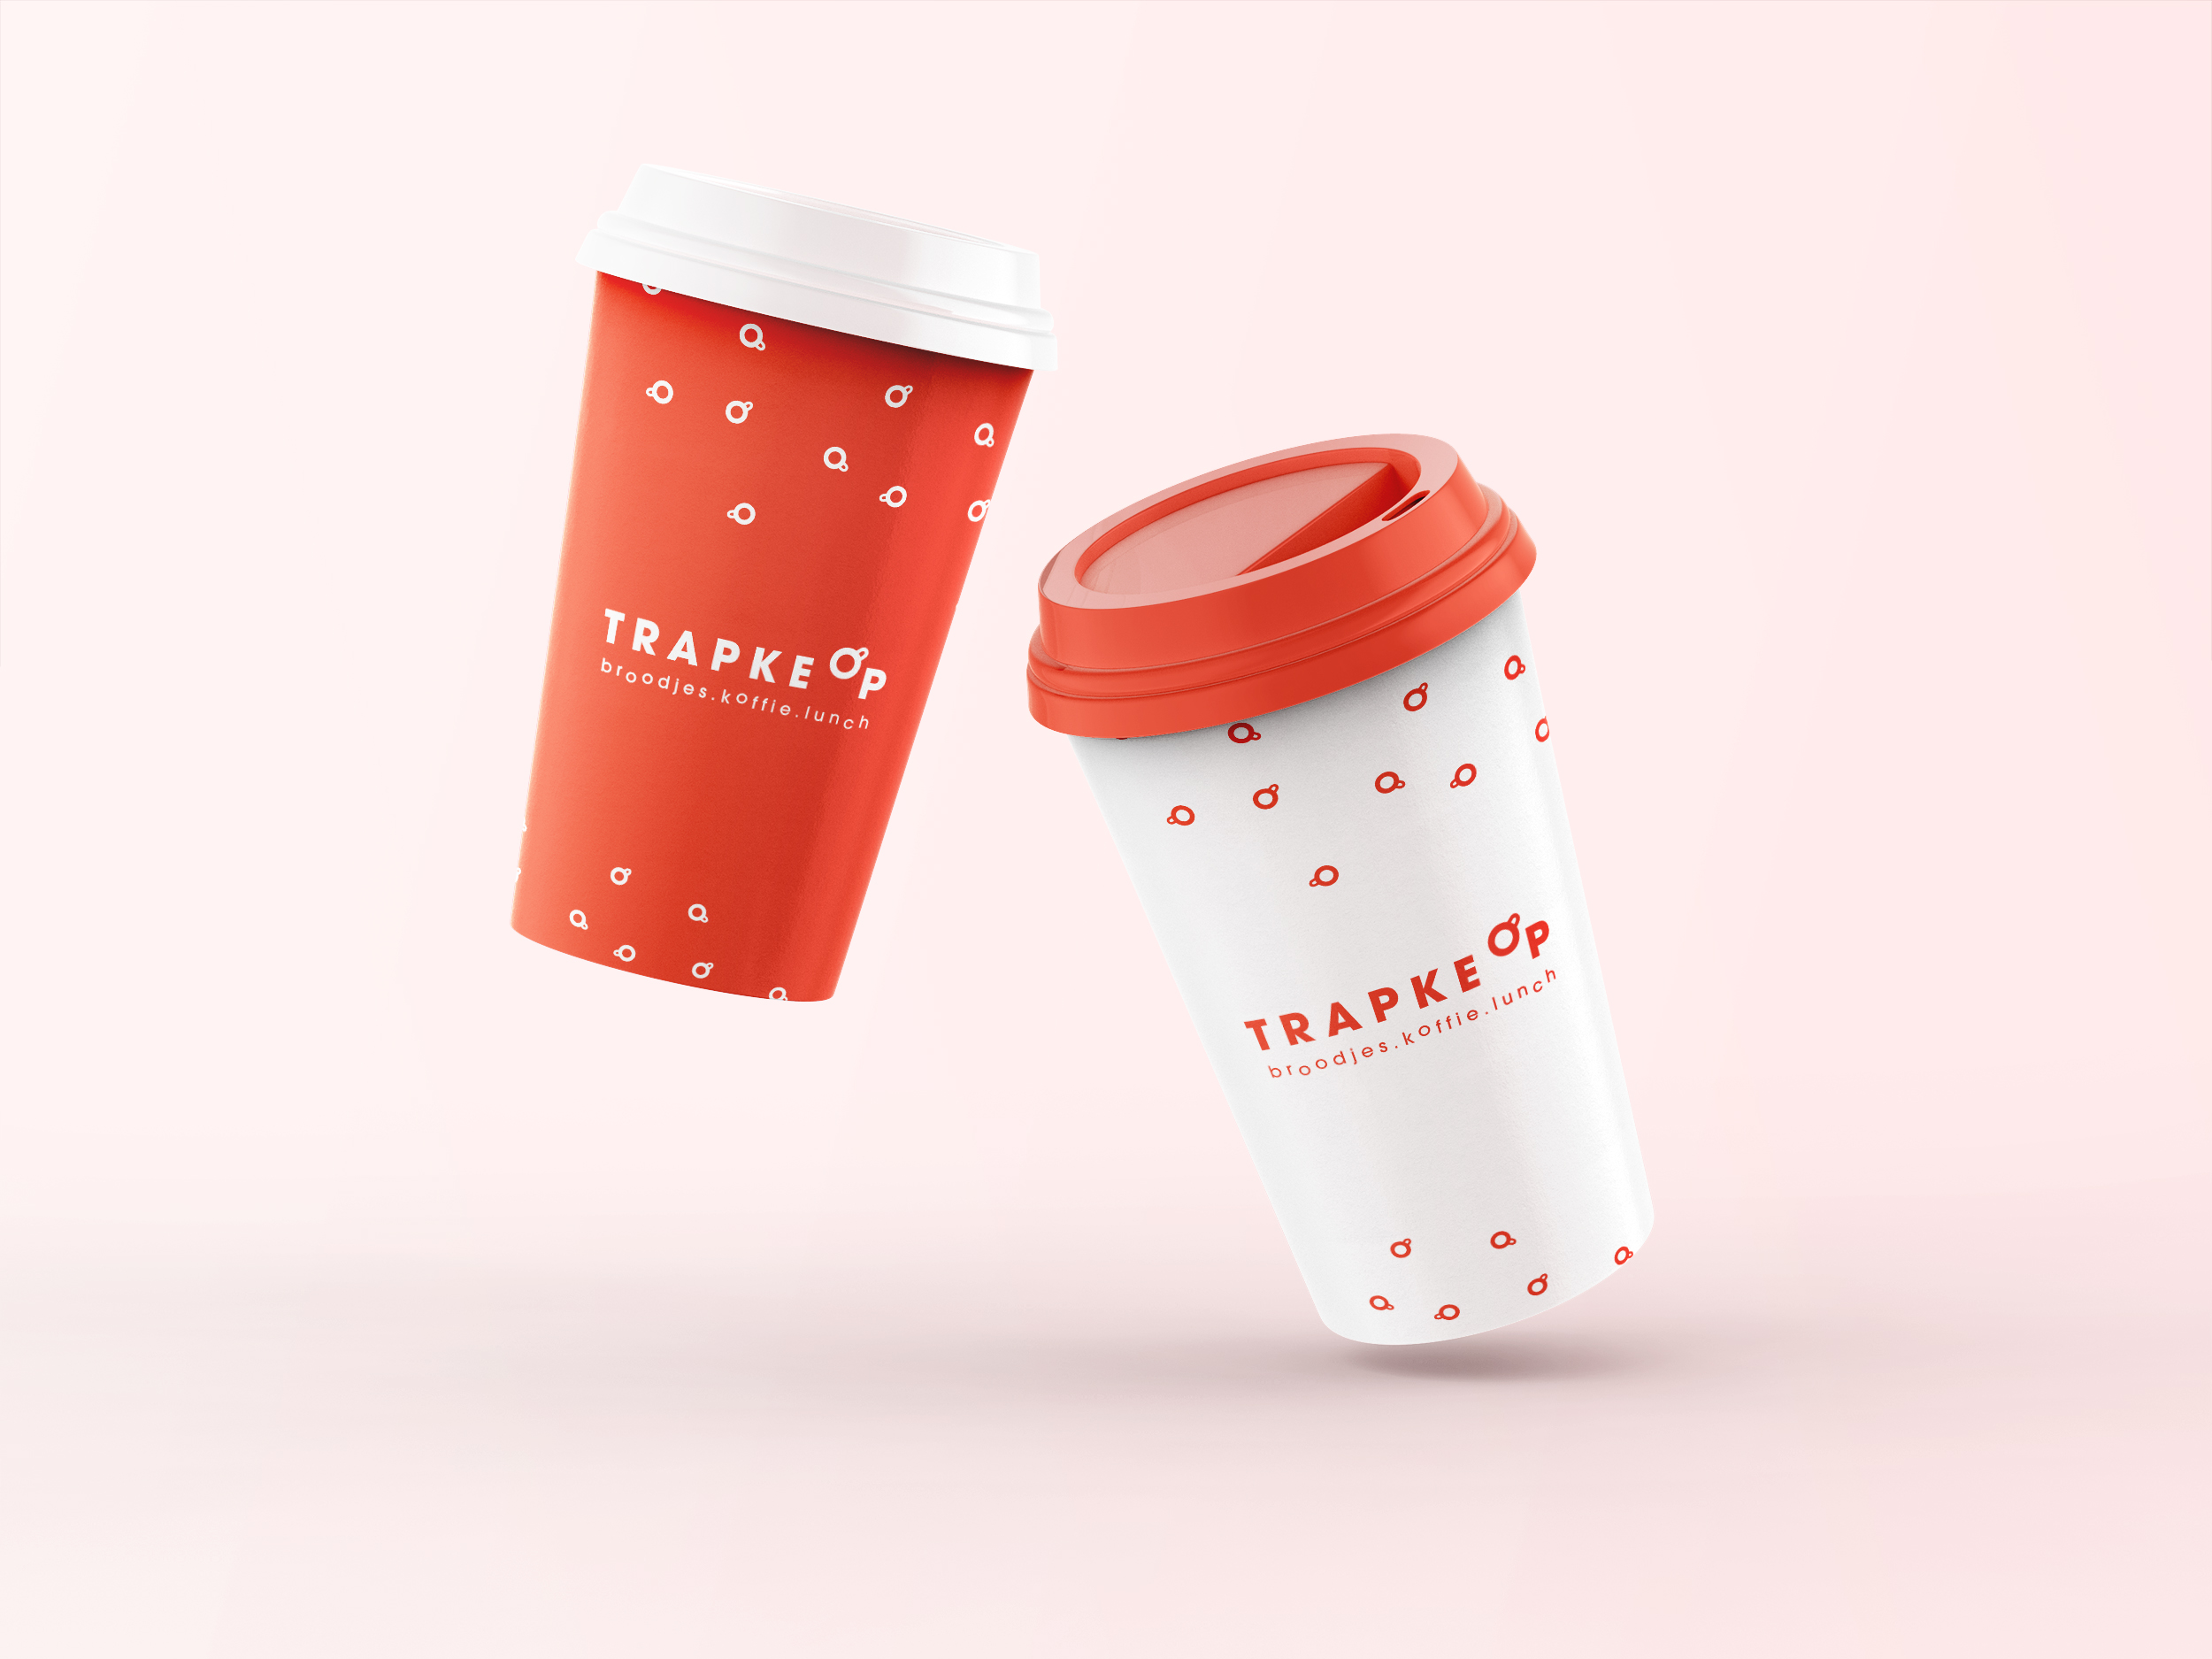 Two Flaoting Cups Mockup-TrapkeOp copy